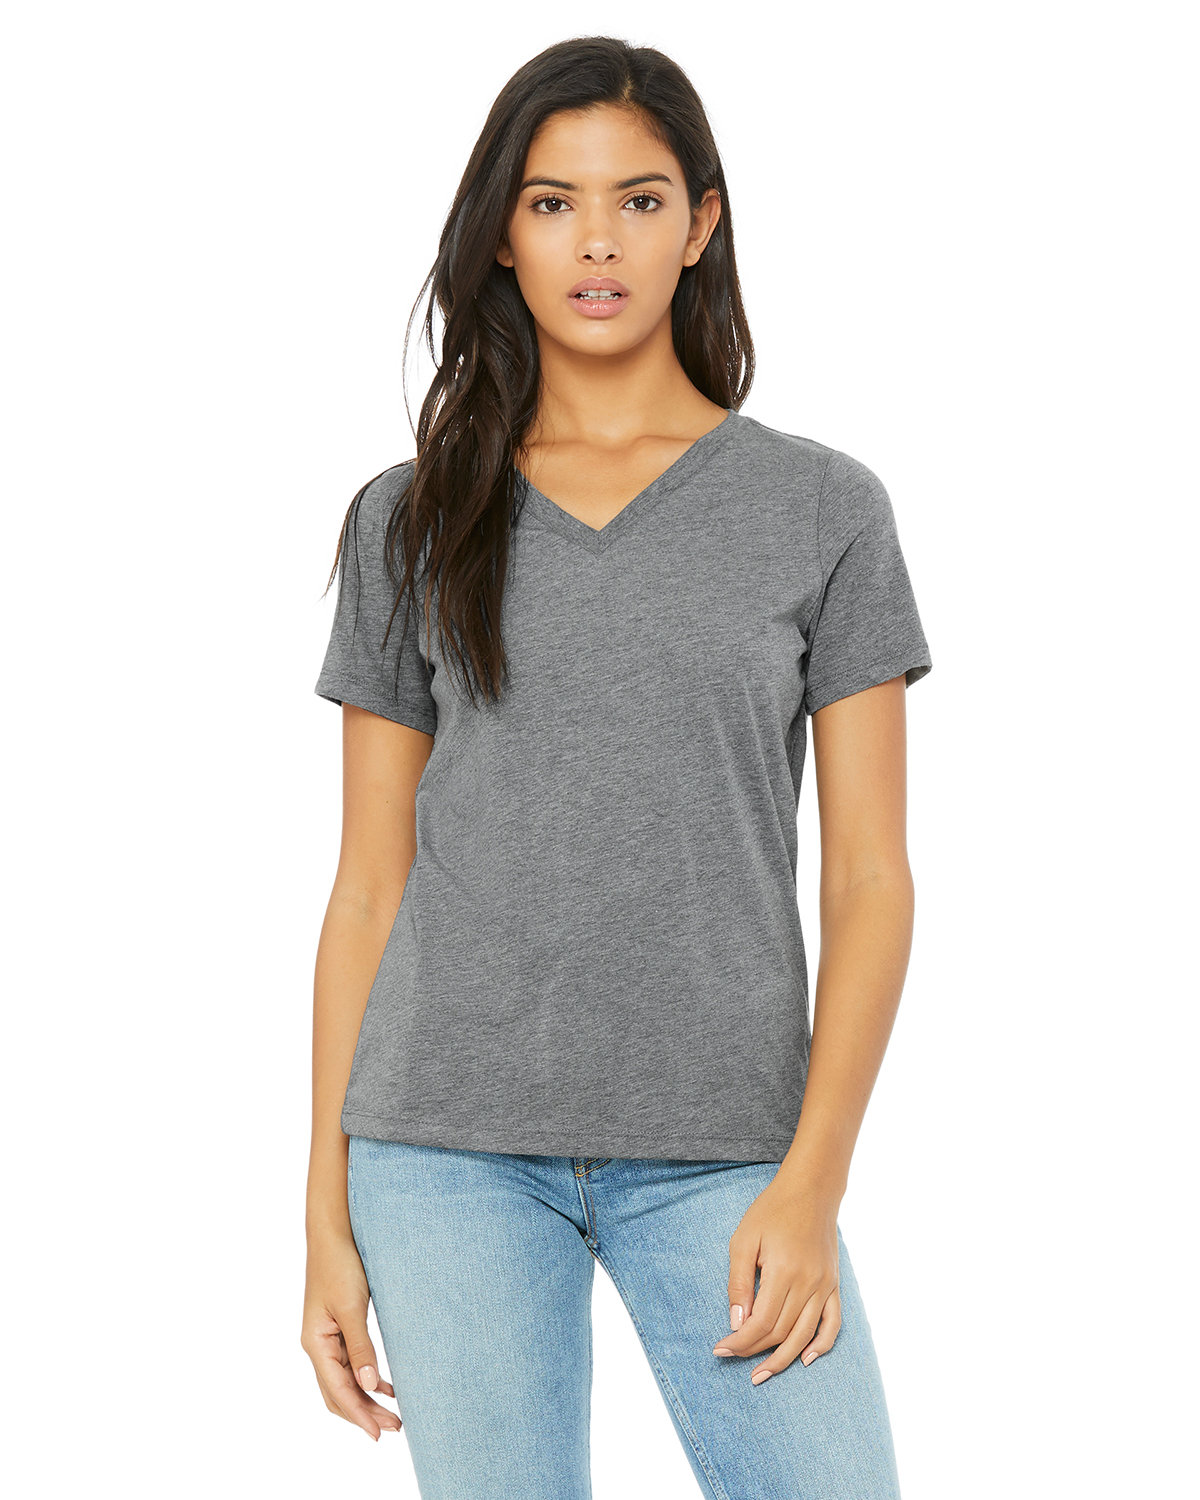 Bella + Canvas Ladies' Relaxed Jersey V-Neck T-Shirt GREY TRIBLEND